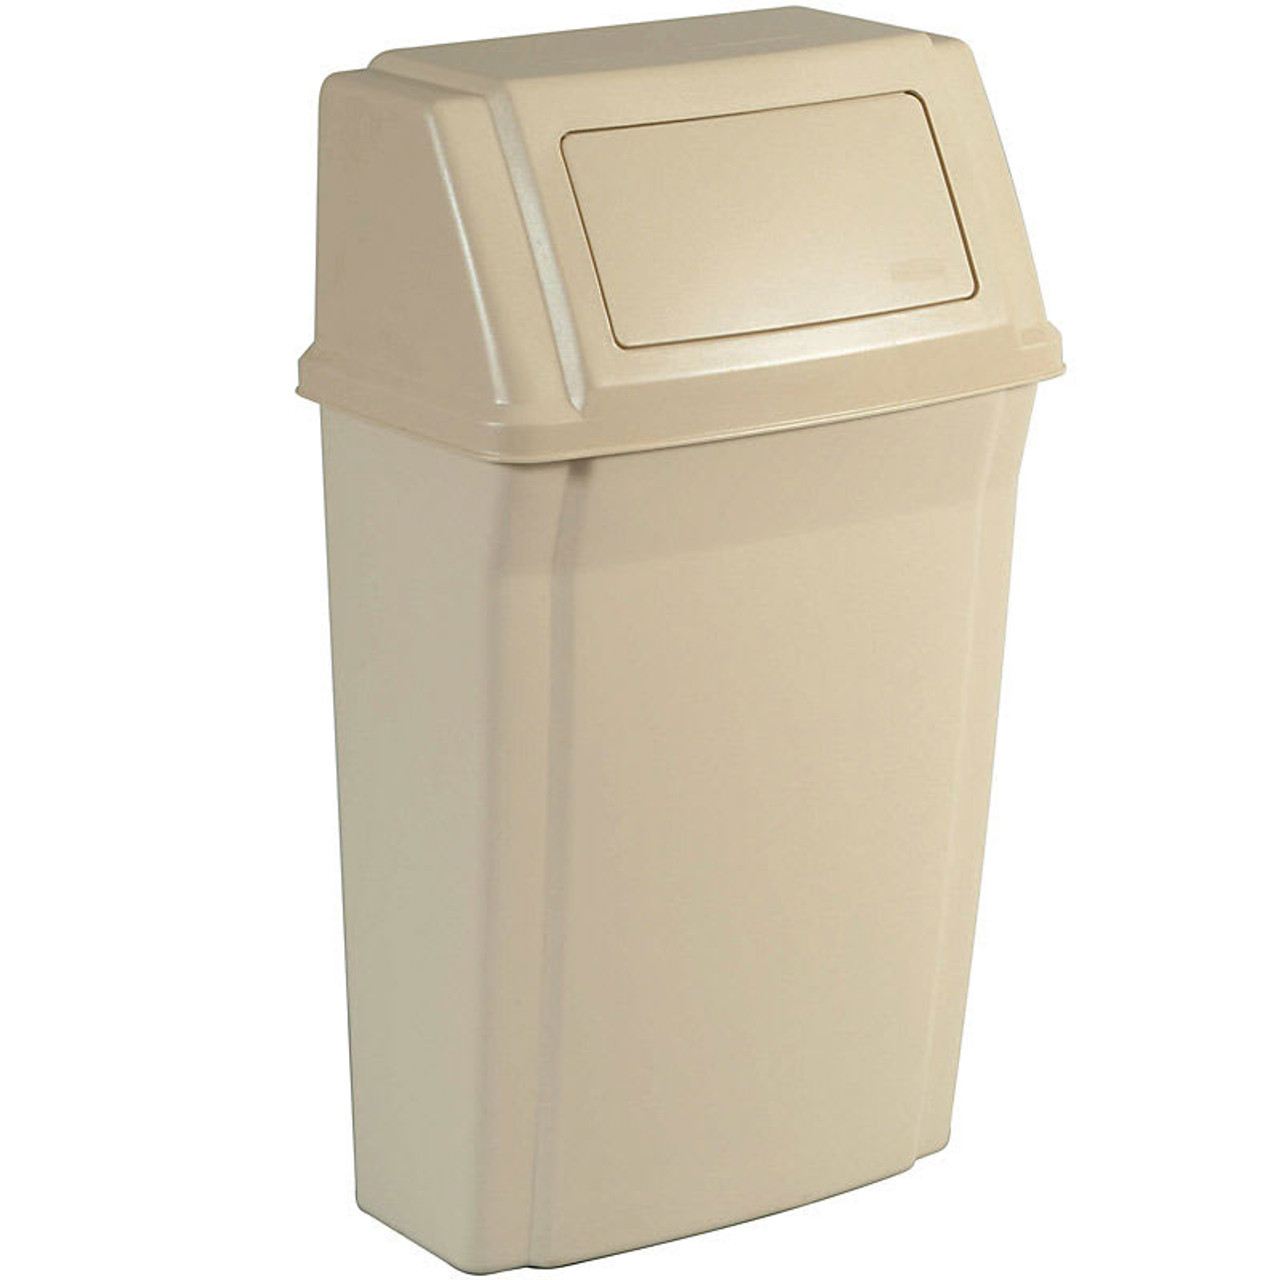 Rubbermaid Slim Jim Wall-Mounted Container 56.8 L - FG782200BEIG